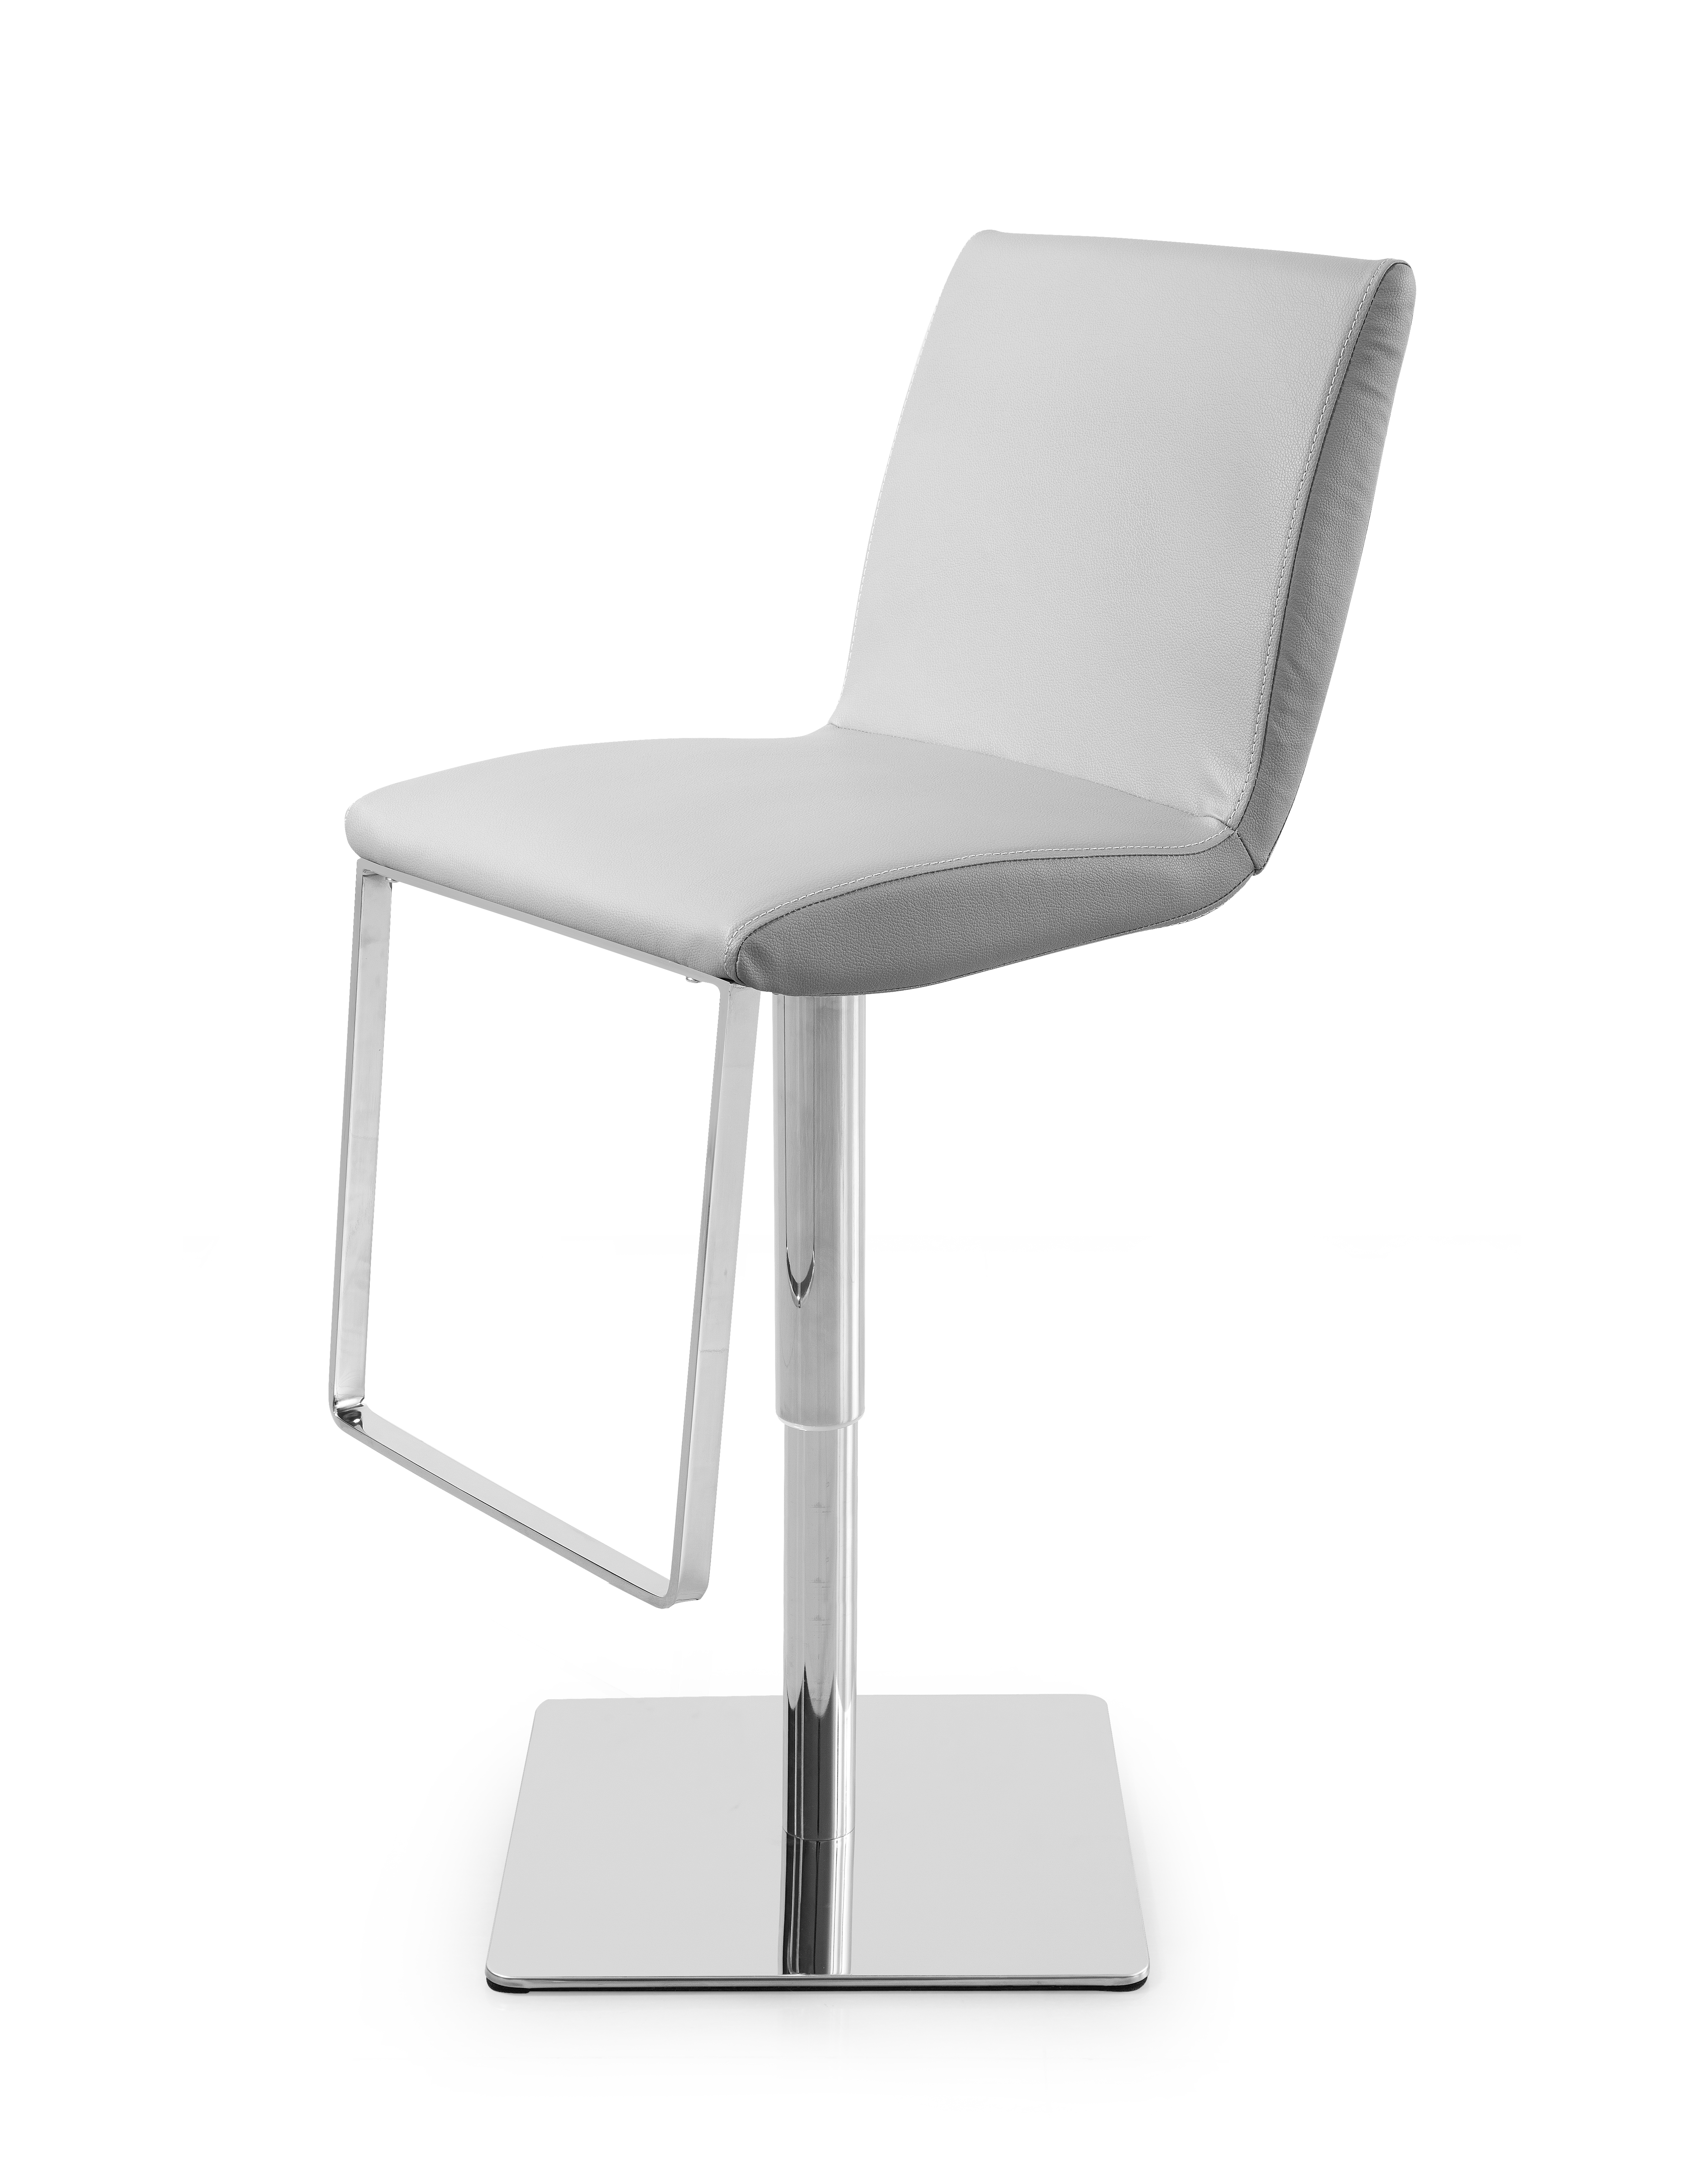 Enjoyable Gia Barstool Grey Adjustable Height Chrome Base Whiteline Metropolitandecor Caraccident5 Cool Chair Designs And Ideas Caraccident5Info